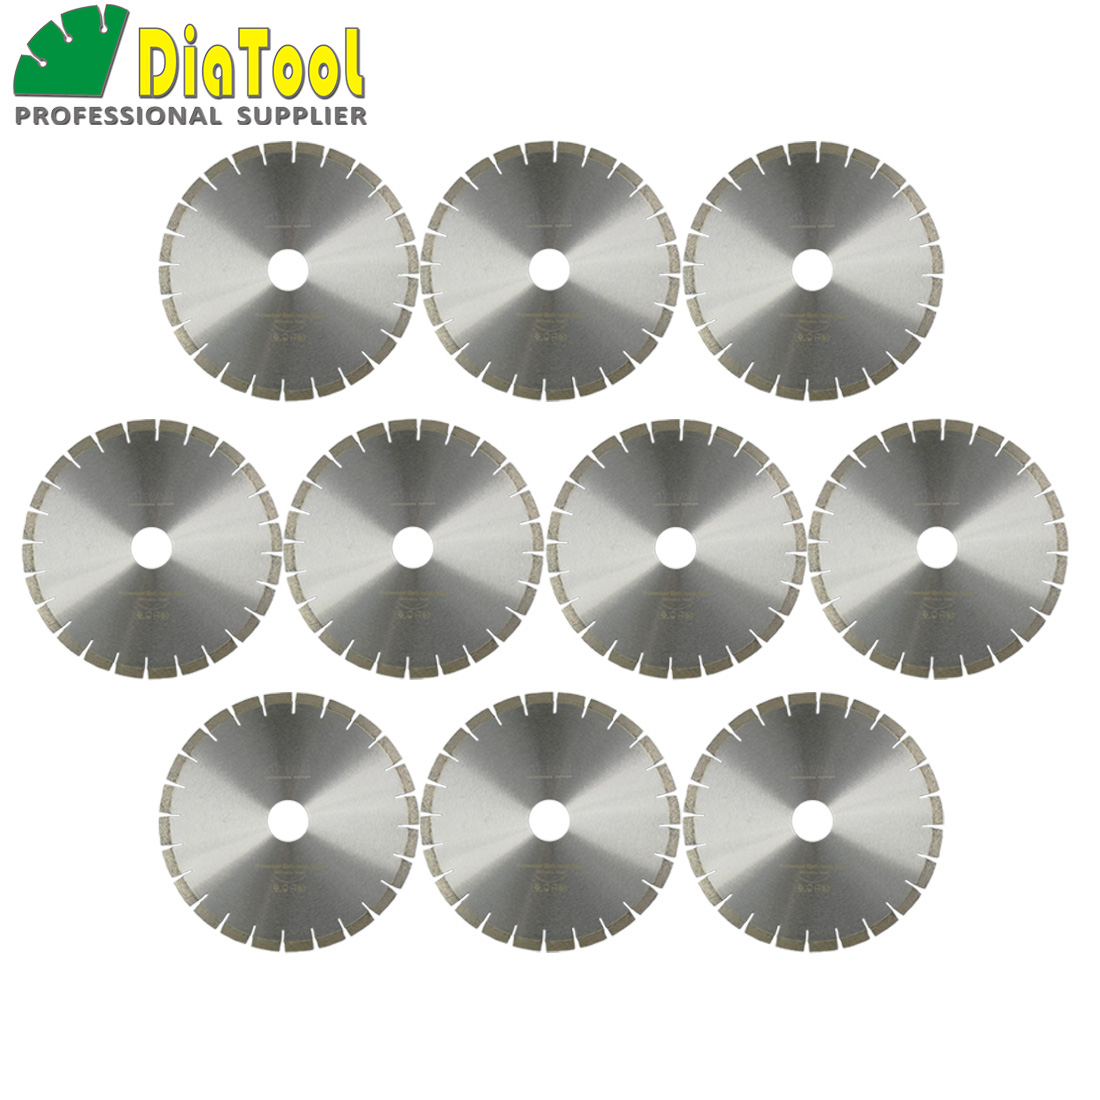 DIATOOL 10pcs 14 Diamond Silent Saw Blade Sandwich Steel Core Cutting Disc Bore 60mm Dia 370mm Granite Blade Diamond Wheel Disk free shiping1pcs aju c10 10 100 10pcs ccmt060204 dia 10mm insertable bore drilling end mill cutting tools arbor for ccmt060204